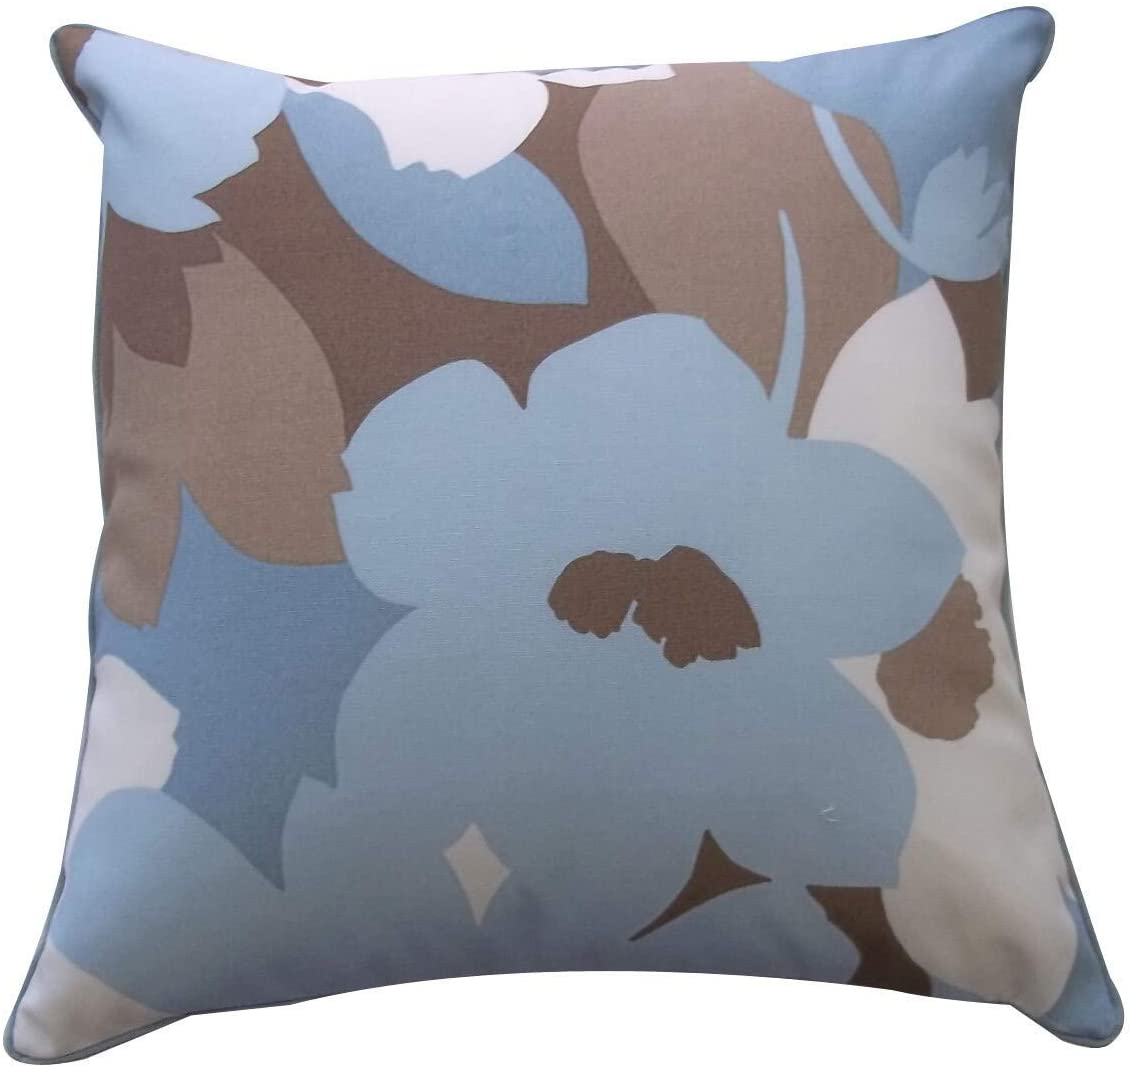 Handmade 20 X 20 inch Robin Outdoor Throw Pillow (United States) Blue Polyester